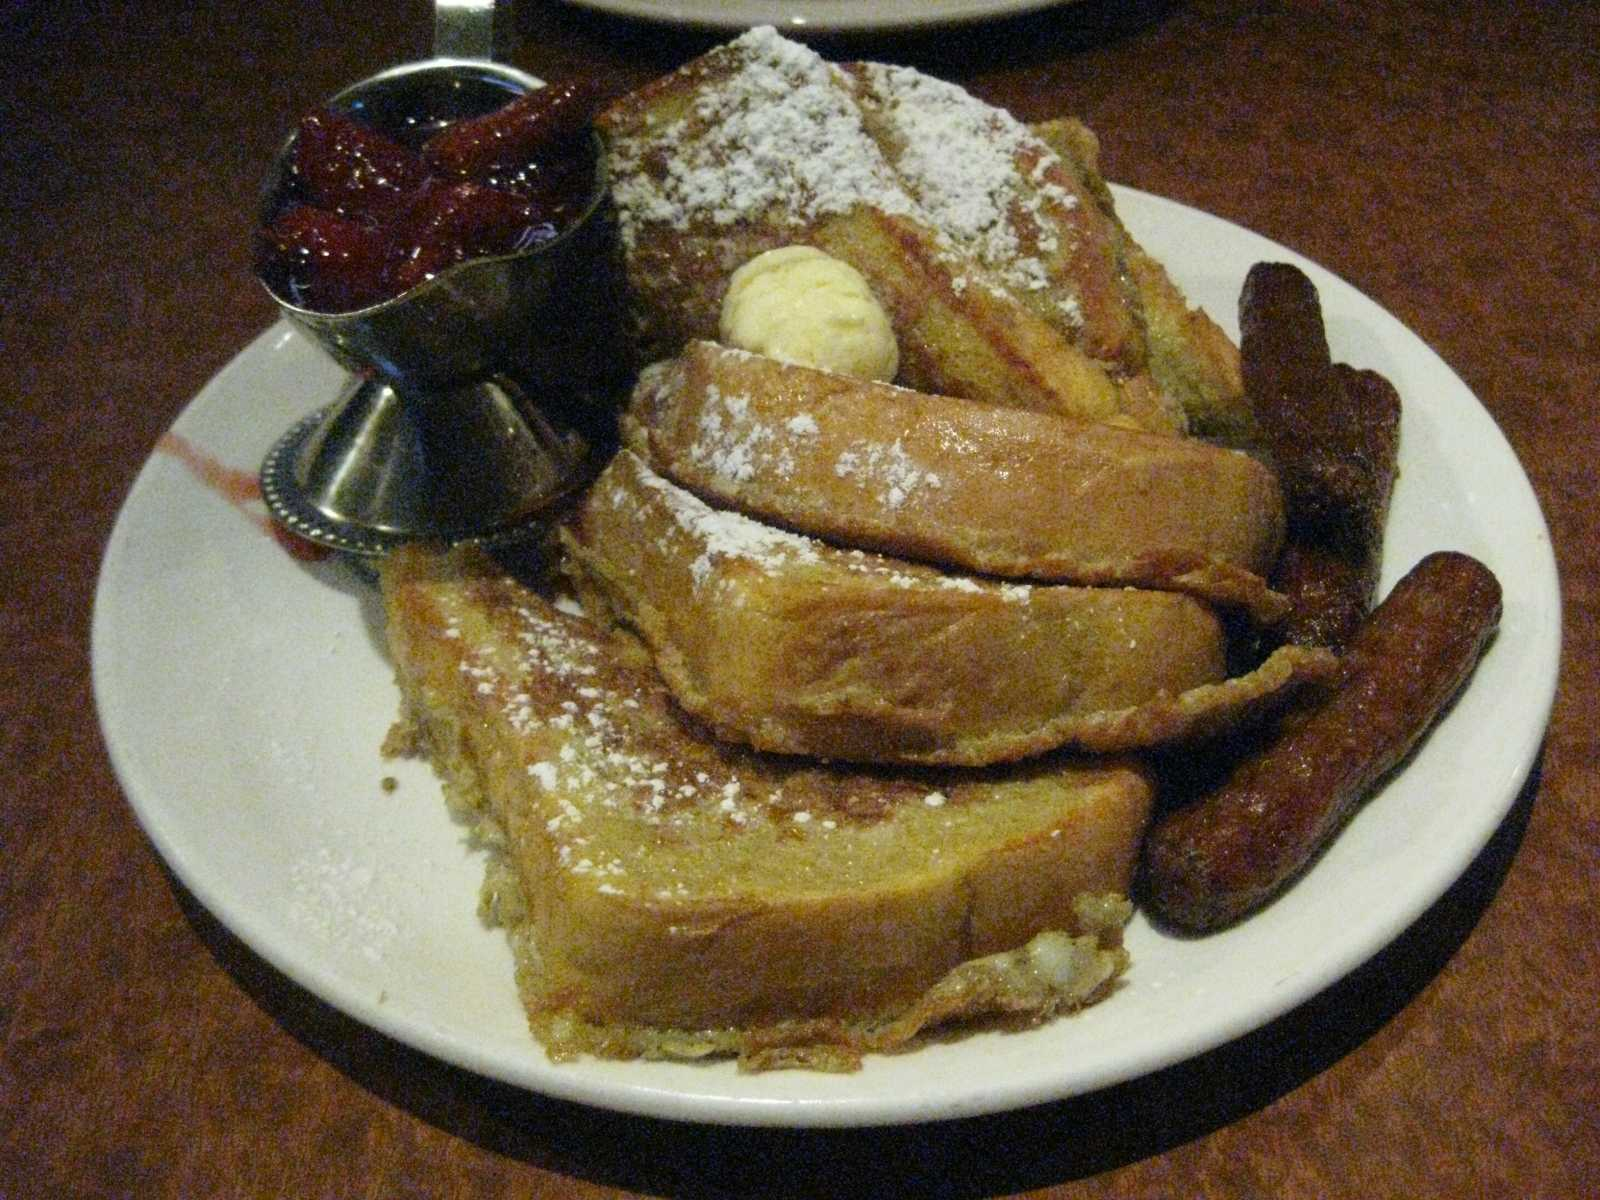 French toast with a side of strawberry sauce and sausage. The Broken Yolk Cafe serves generous portions. Michelle Moran, City Times.